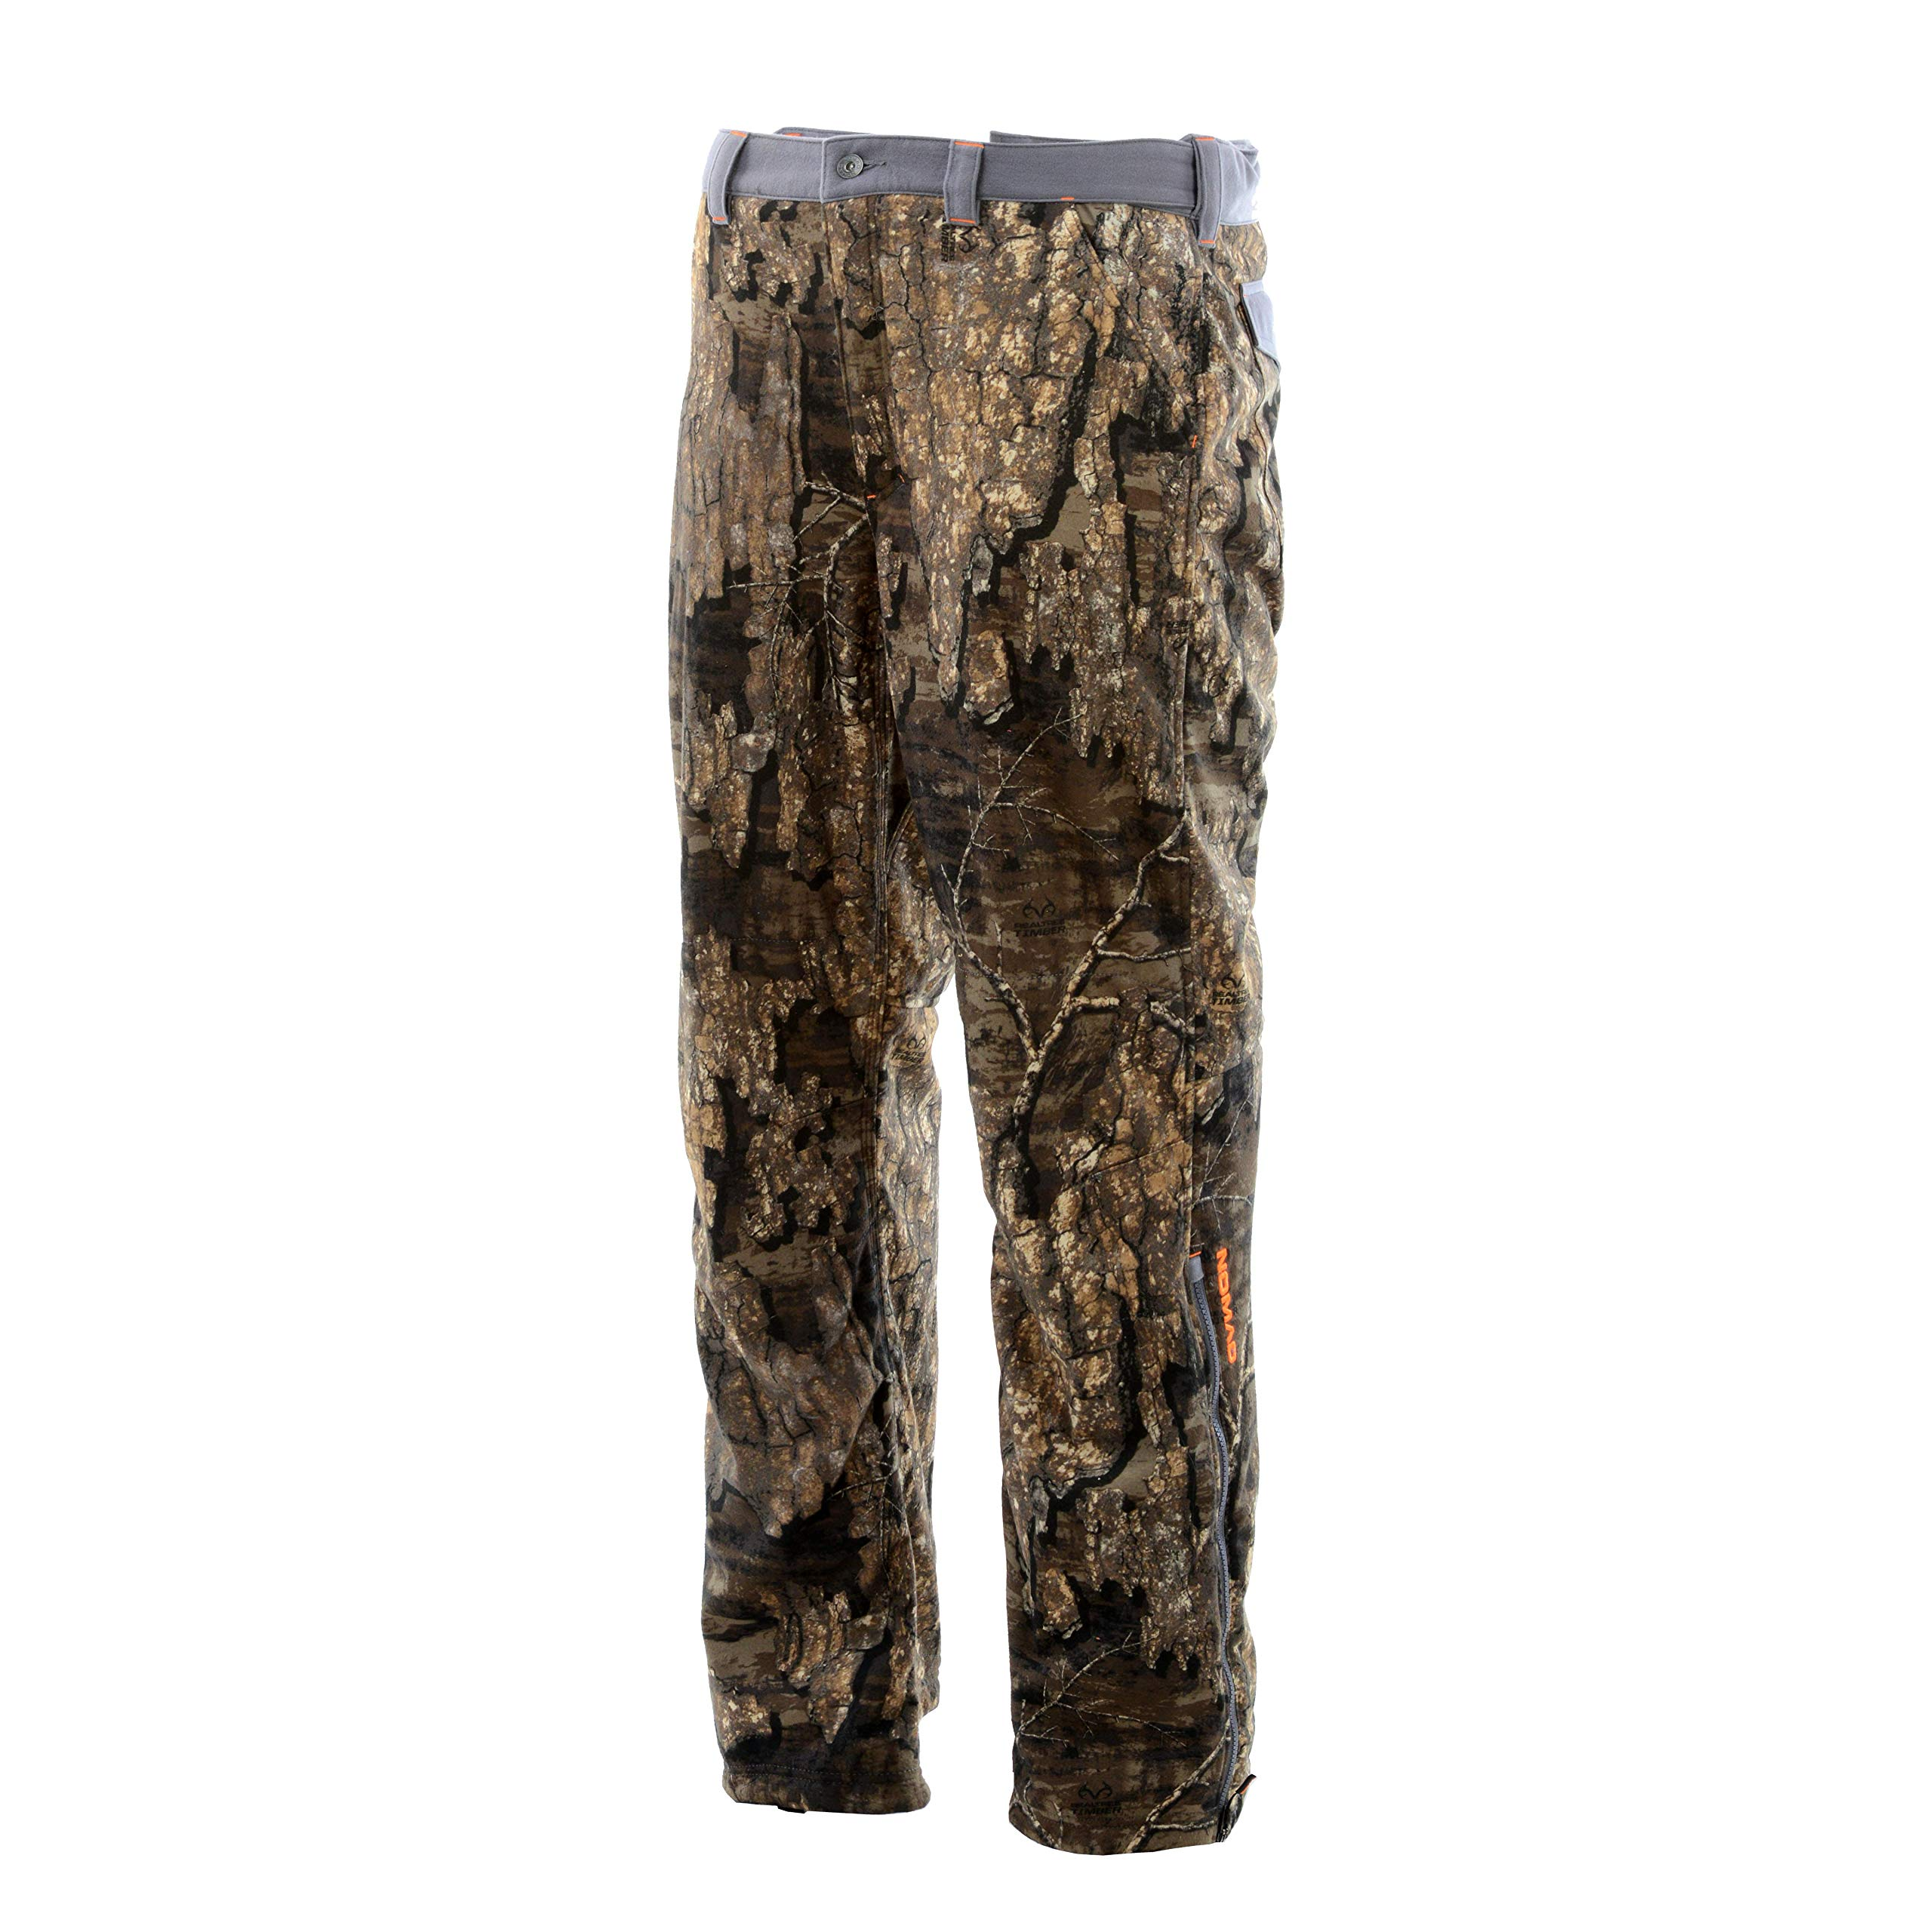 Nomad Men's Harvester Pant, Realtree Timber, Large by Nomad